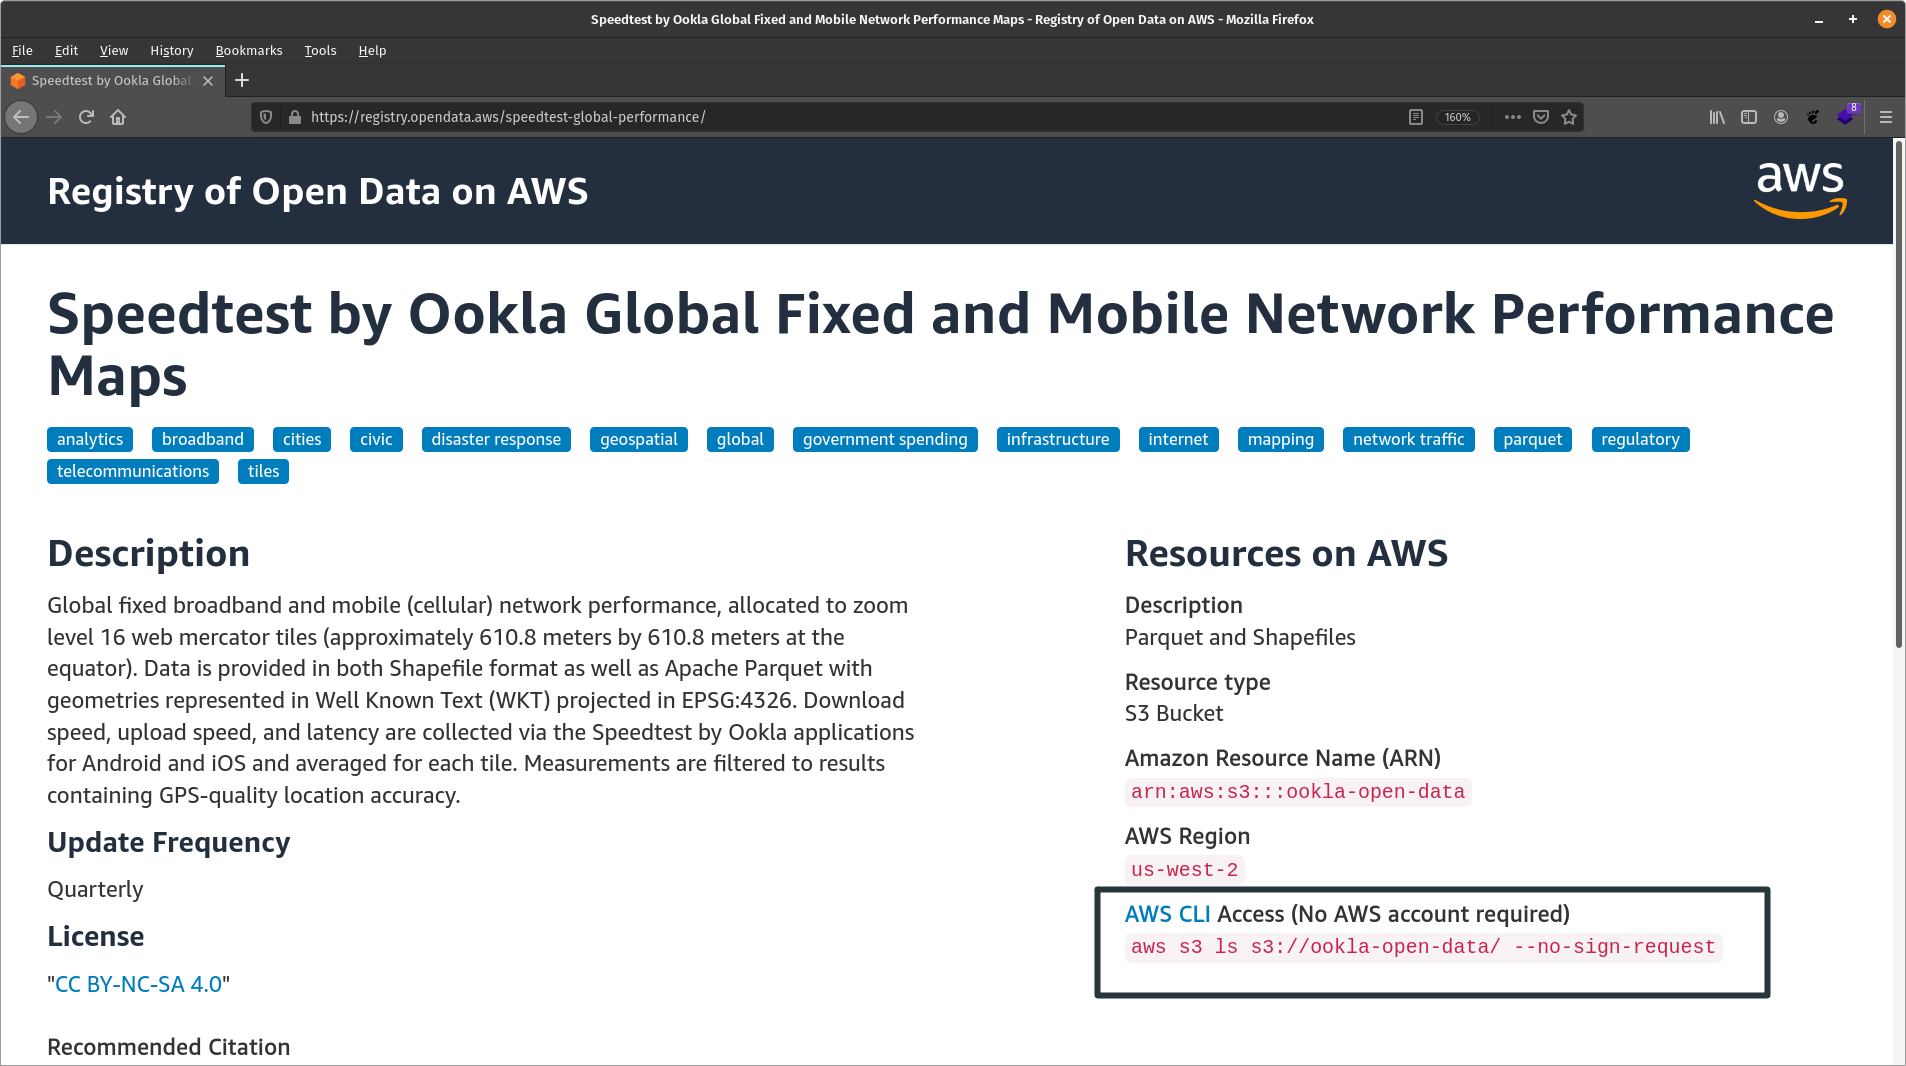 Registry of Open Data on AWS AWS CLI Access